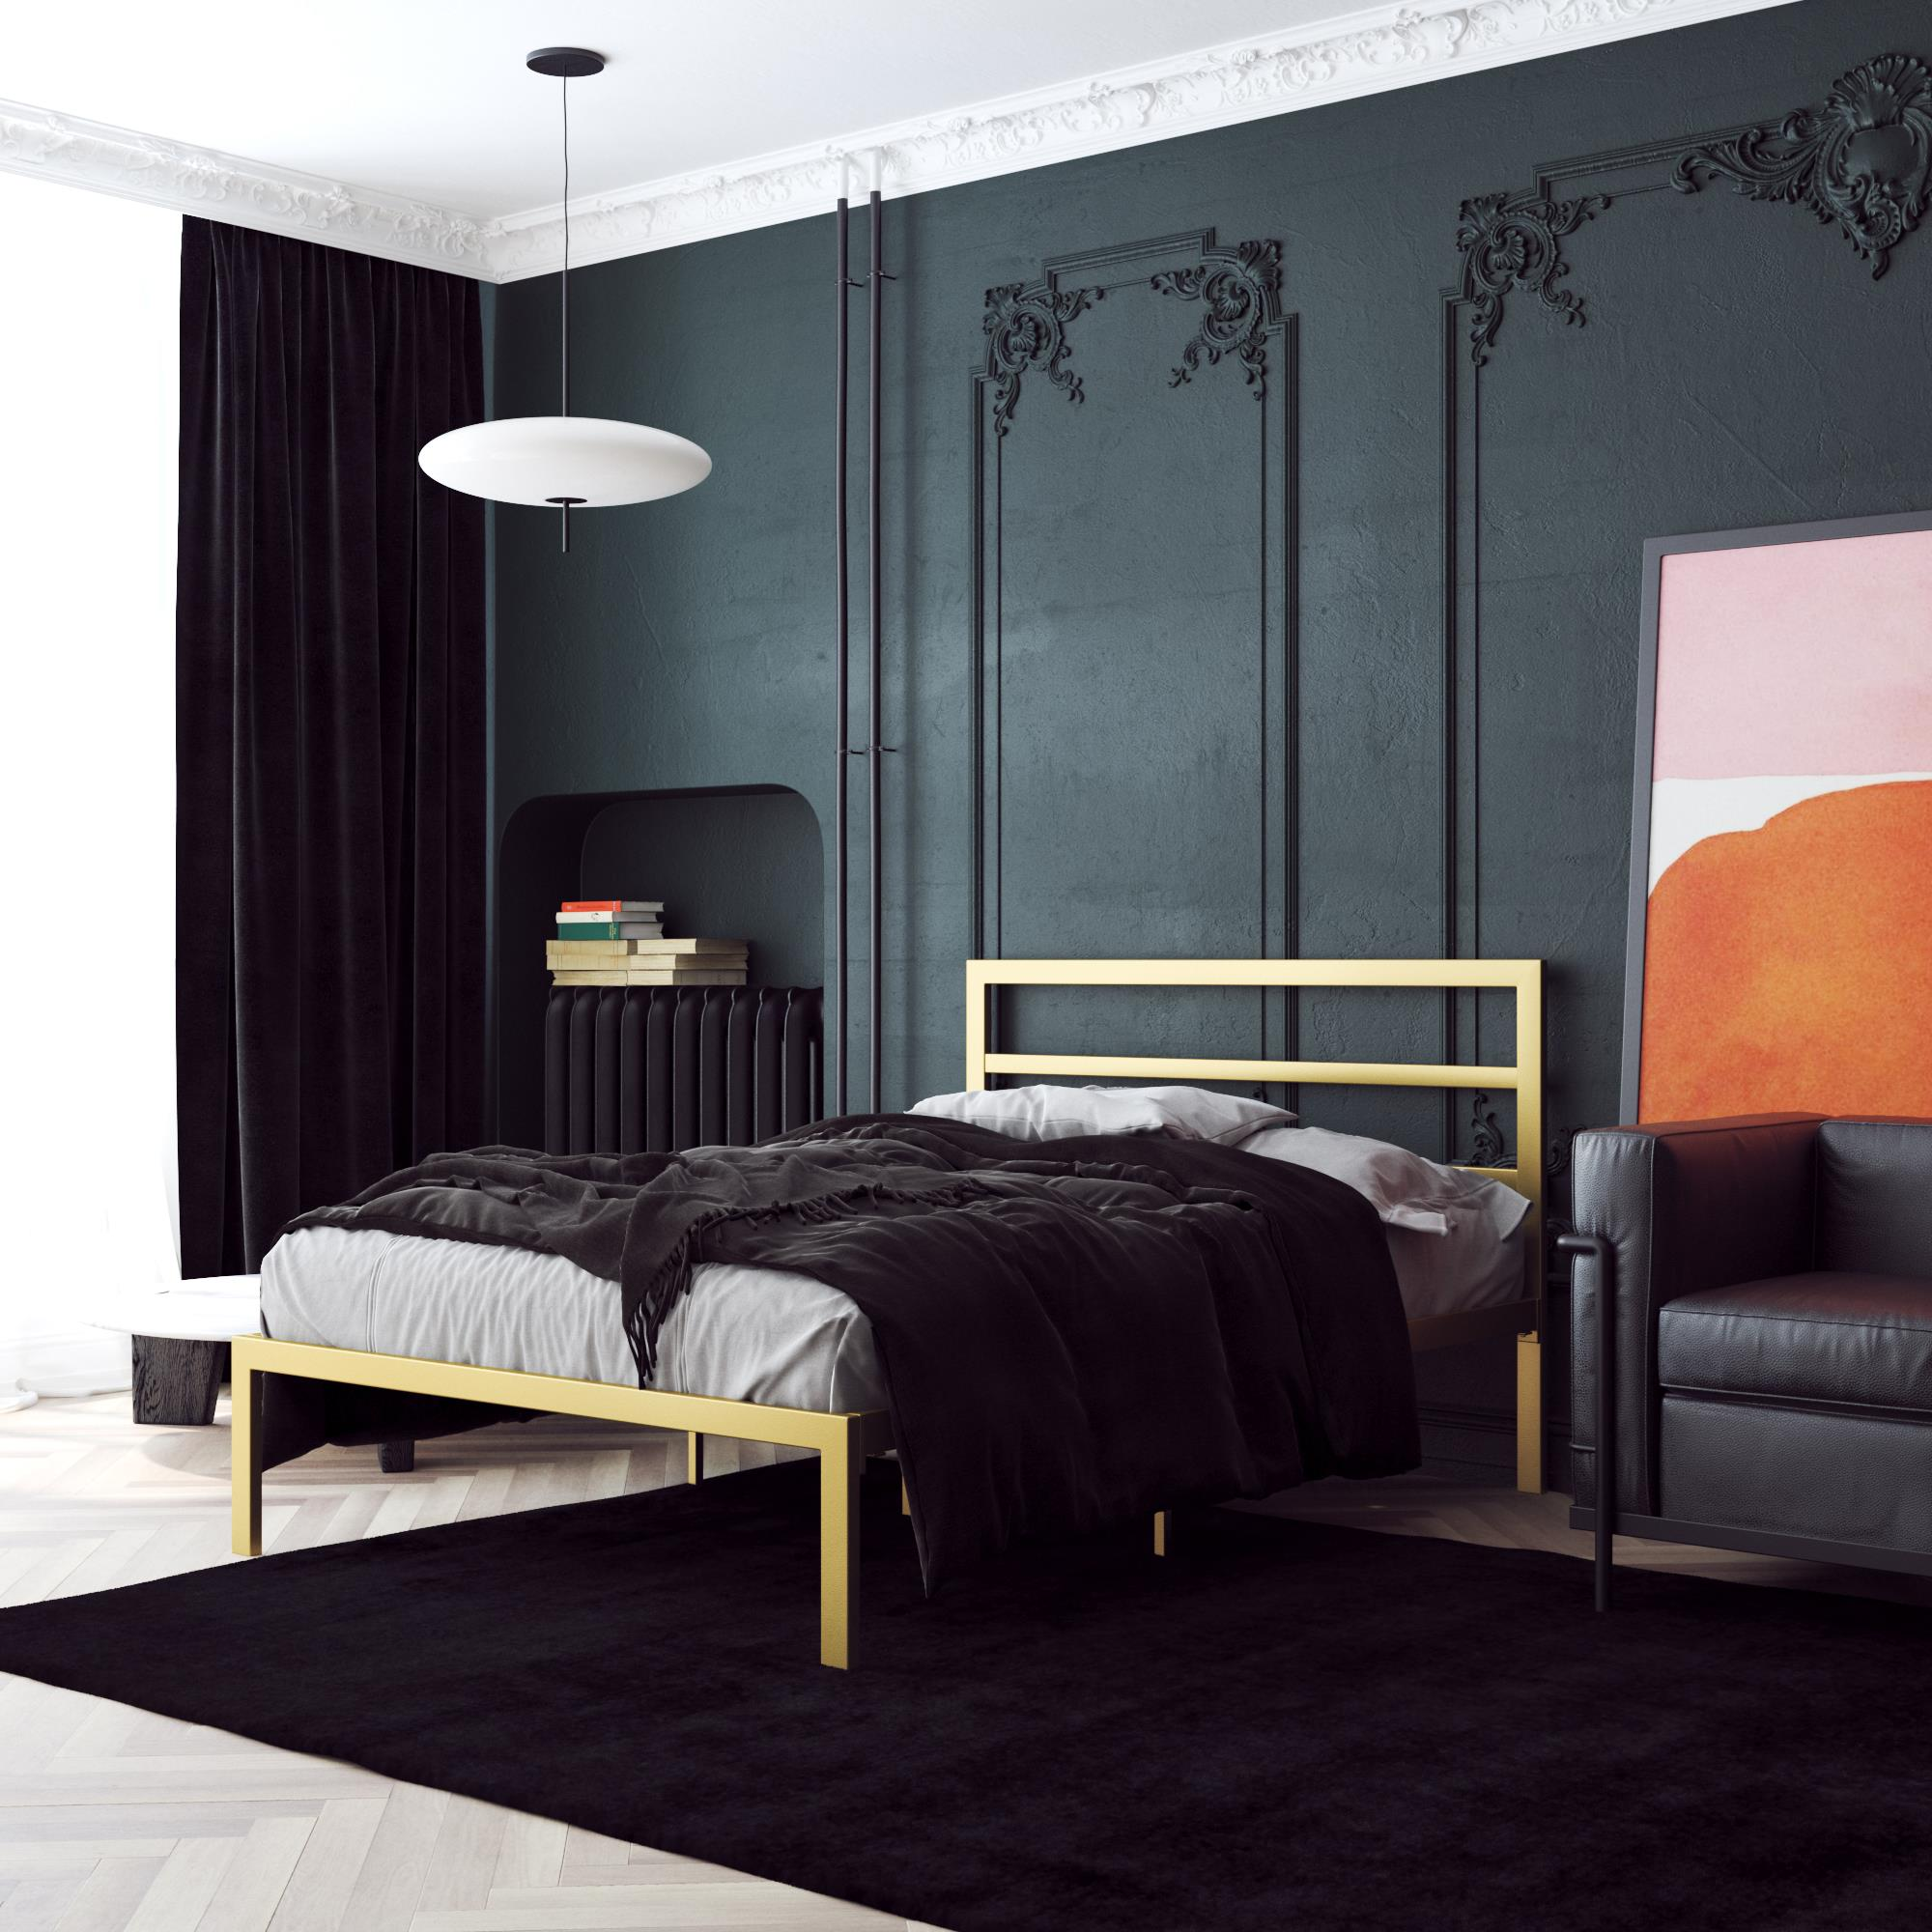 Signature Sleep Premium Modern Platform Bed With Headboard Metal Gold Multiple Sizes Queen Walmart Com Walmart Com